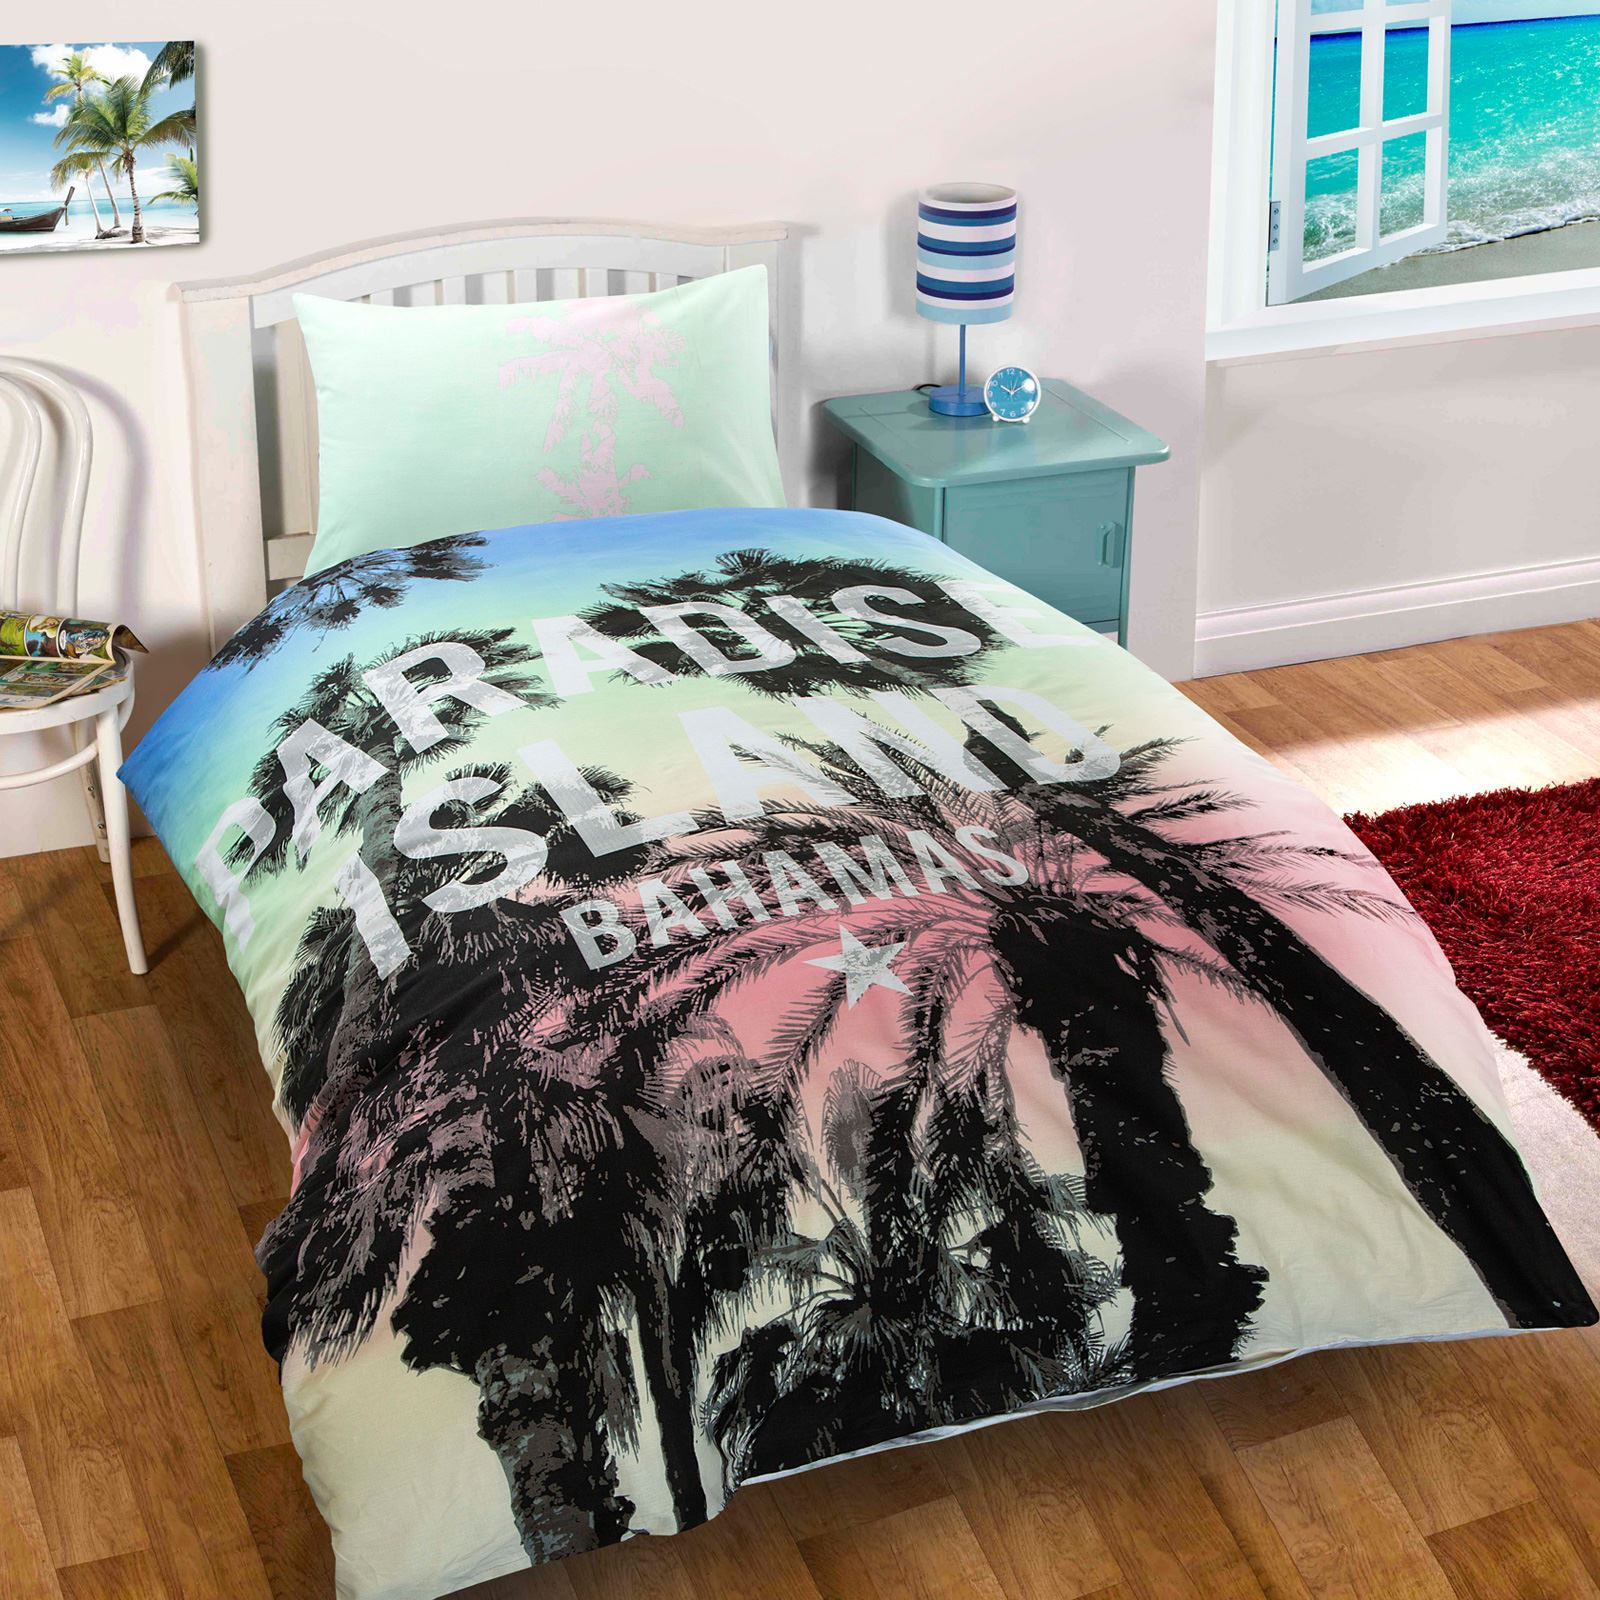 Children-Teenage-Kids-Boys-Girls-Single-Quilt-Duvet-Cover-Pillowcase-Bedding-Set thumbnail 17